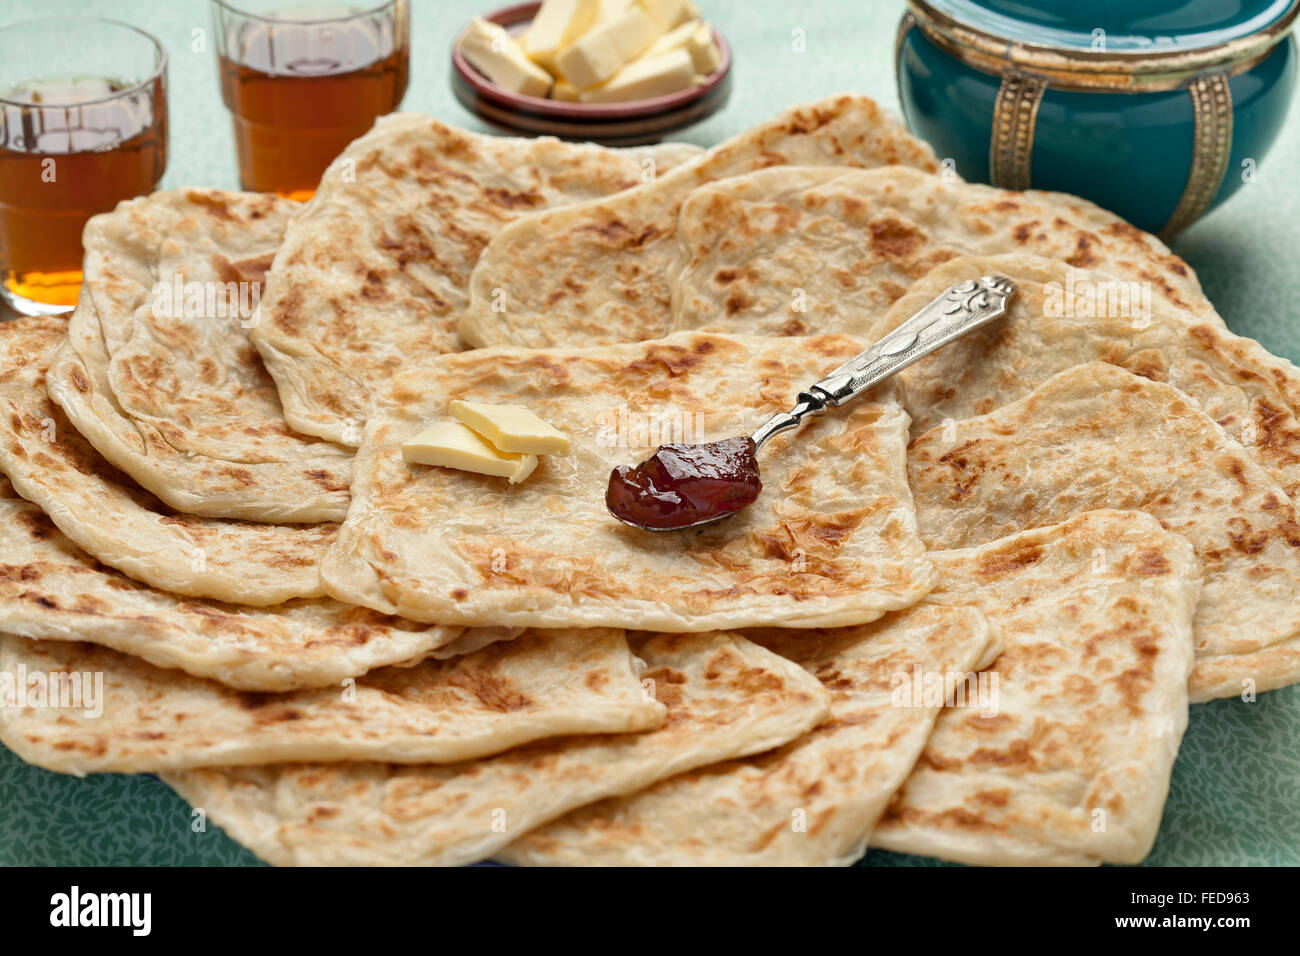 Fresh baked Moroccan square pancakes called Rghaif or Msemen with butter and jam - Stock Image